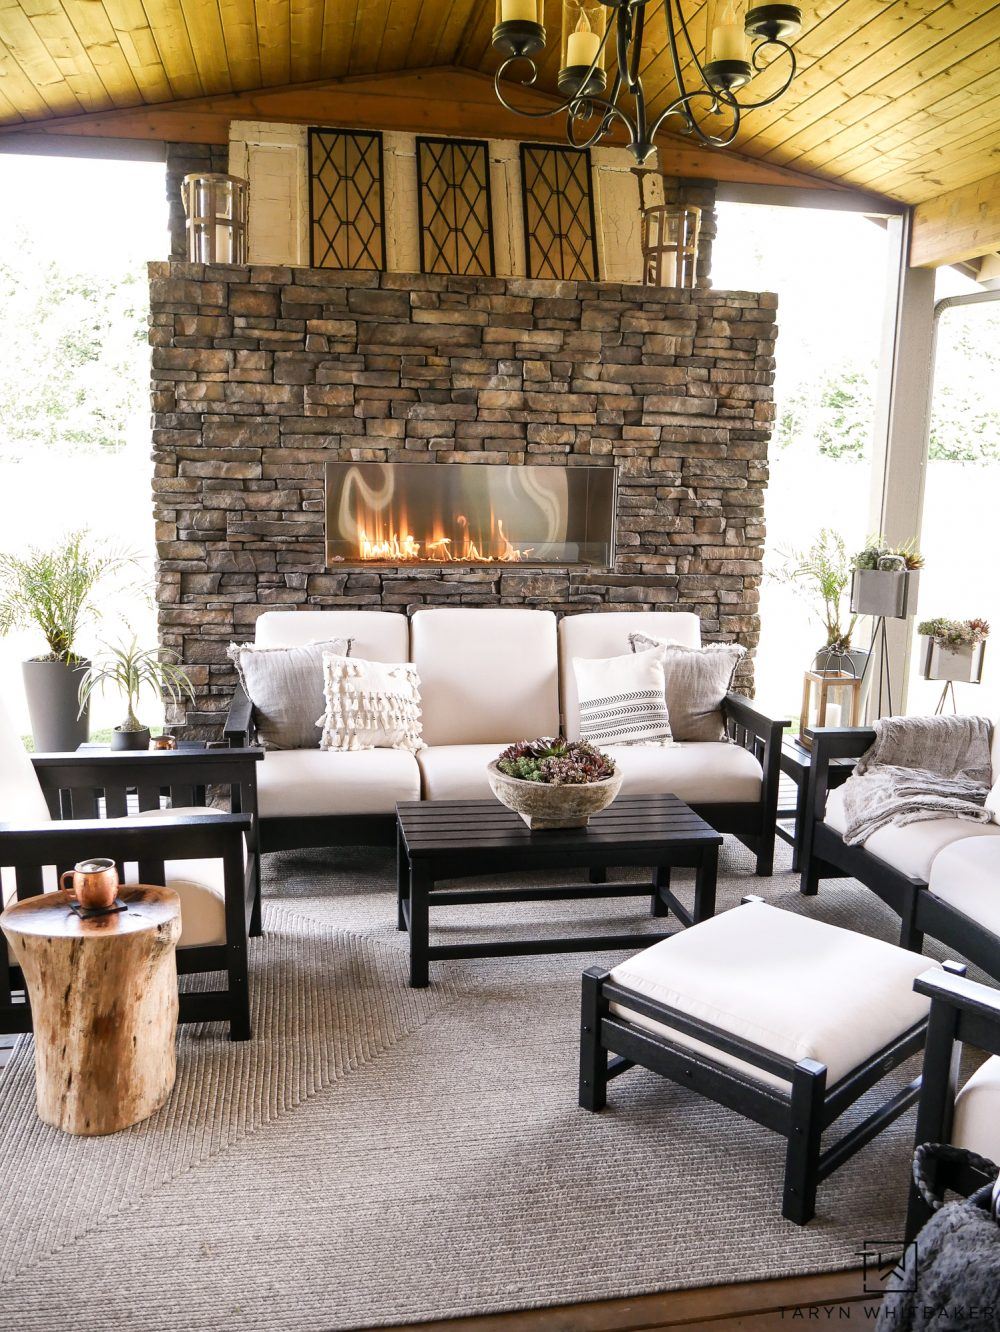 This gorgeous Black and White Outdoor Furniture makes this space feel so luxurious. The neutral tones with the stone fireplace create a soft and cozy living space.